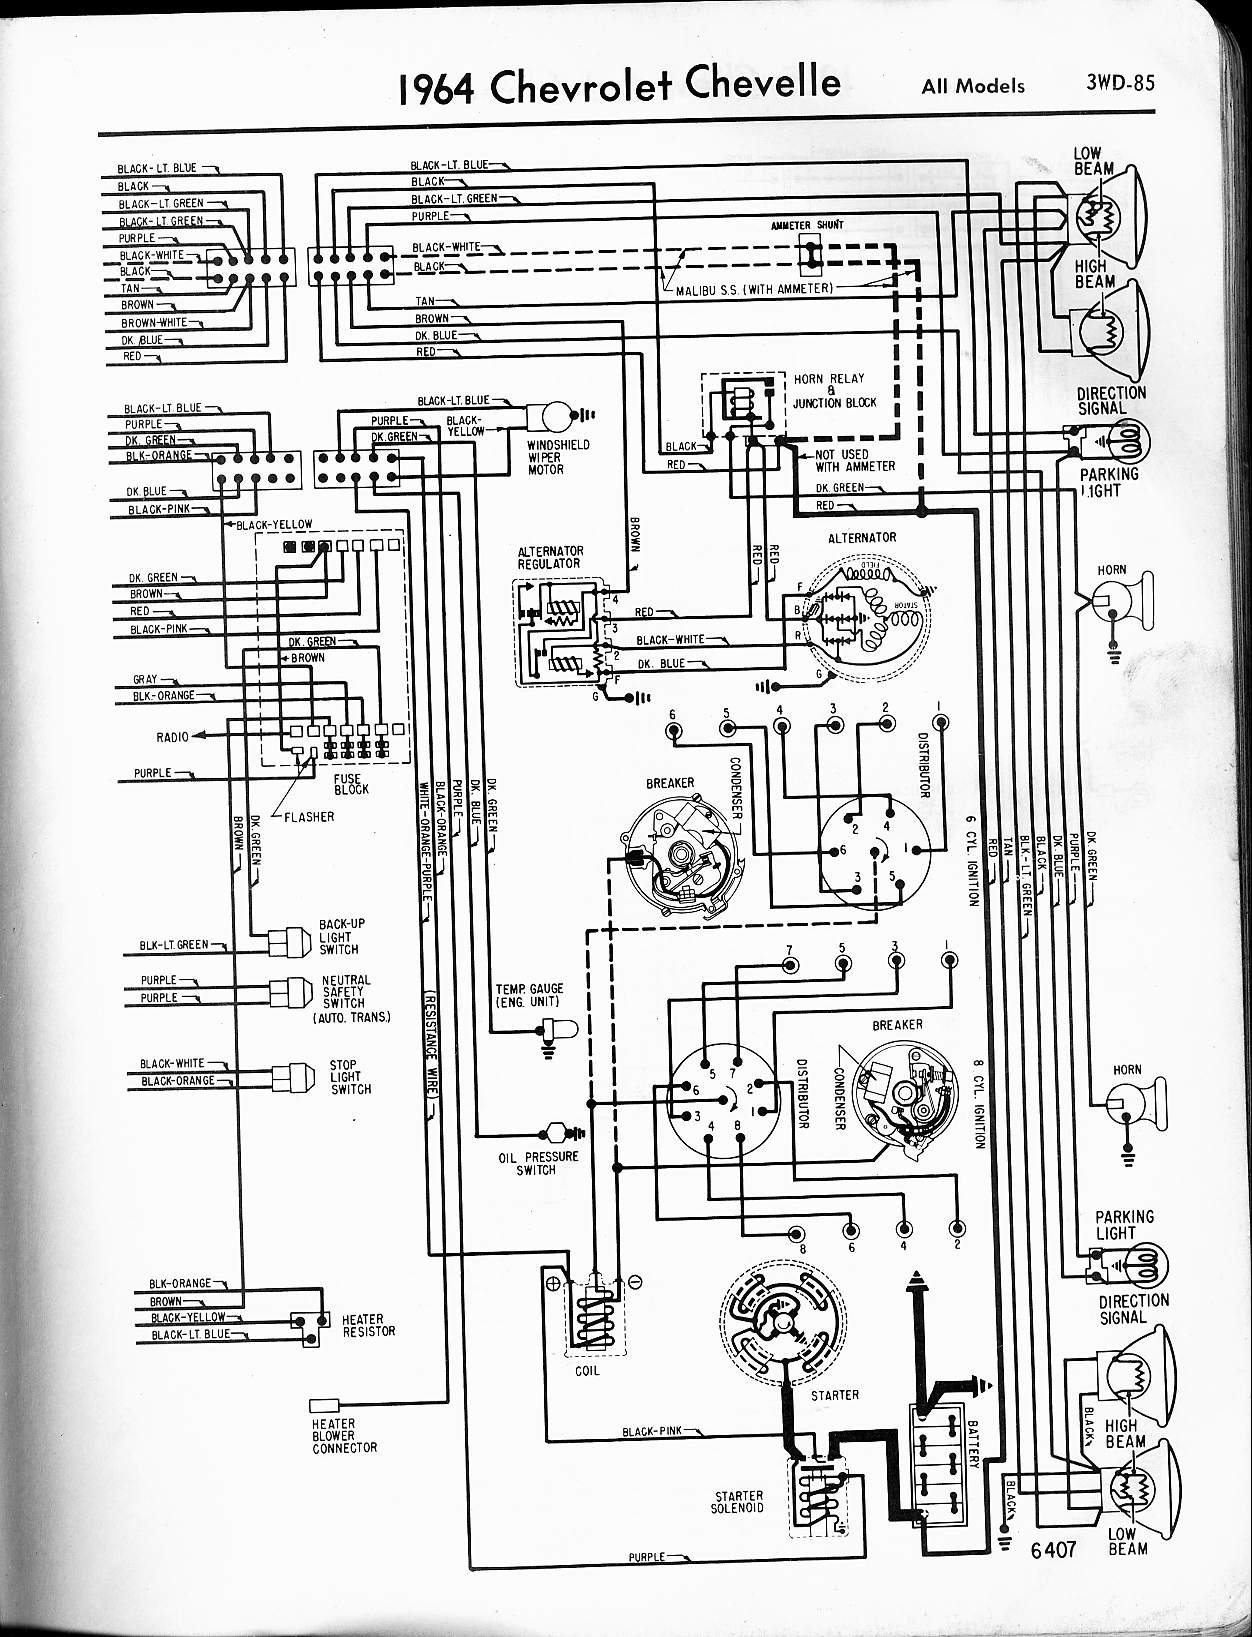 ignition coil wiring diagram 65 chevelle opinions about wiring tail light wiring  diagram 1968 camaro chevy